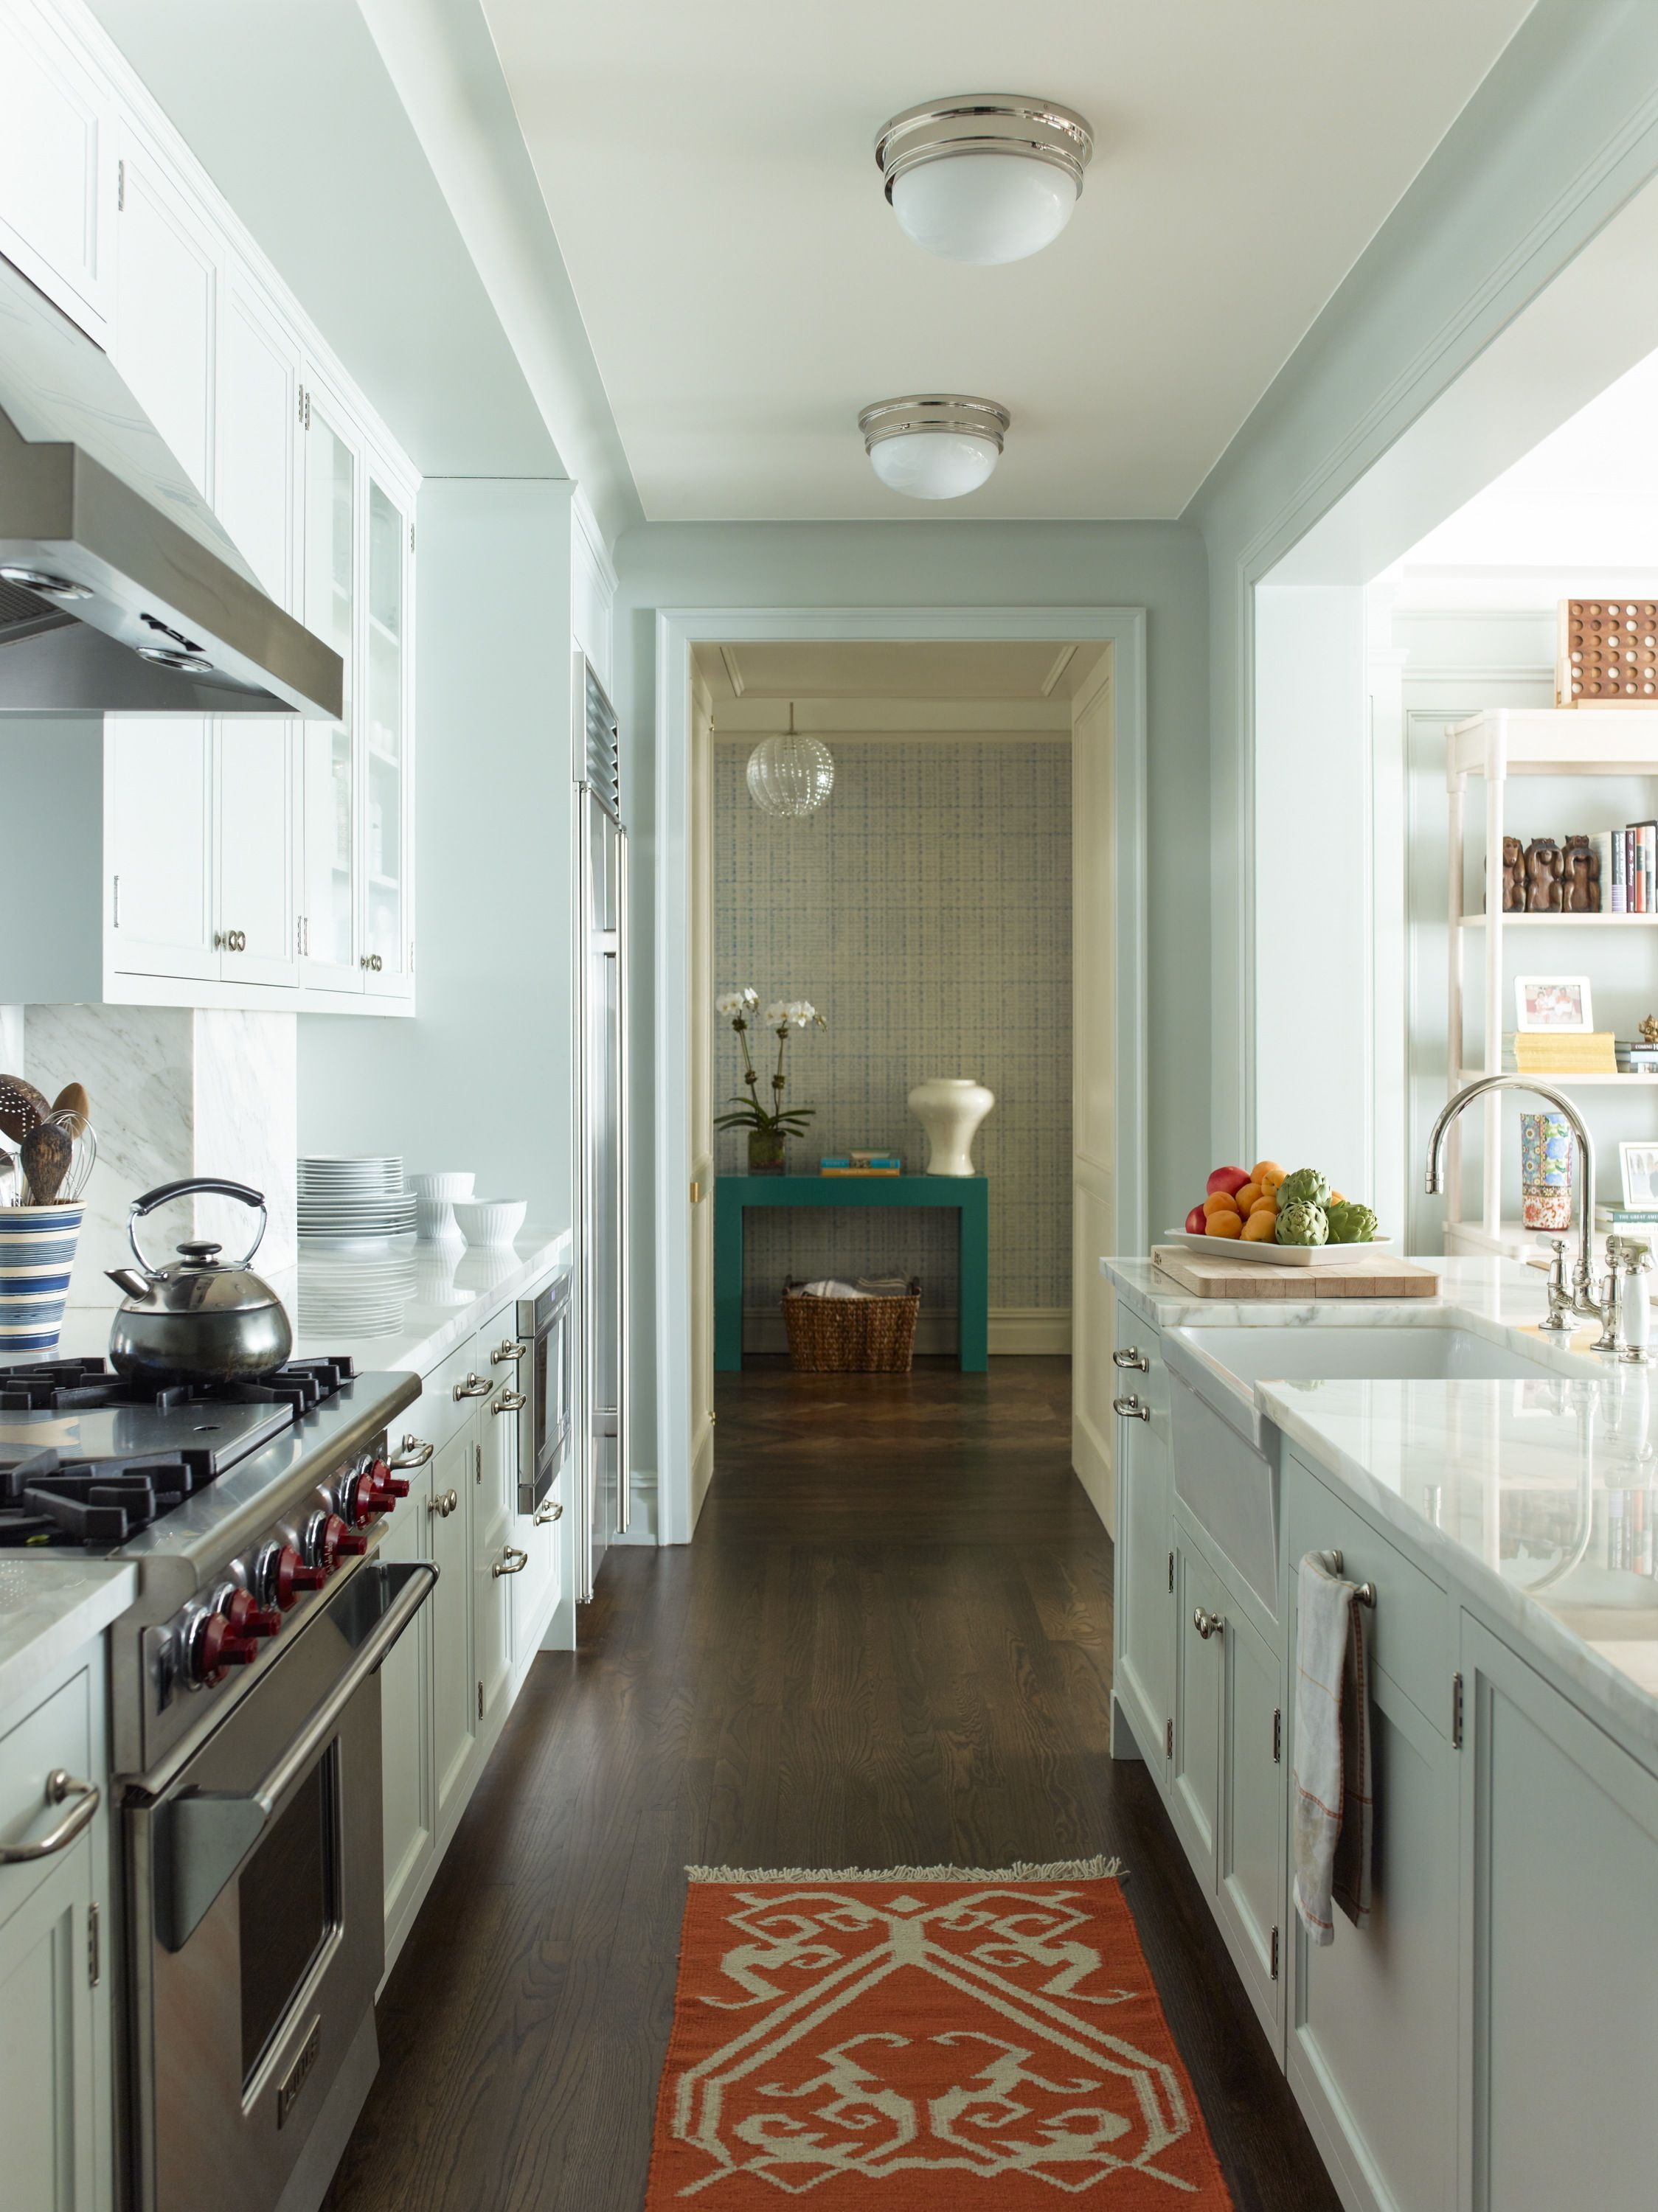 20 sophisticated galley style kitchens galley style kitchen kitchen remodel diy kitchen remodel on kitchen remodel galley style id=78843